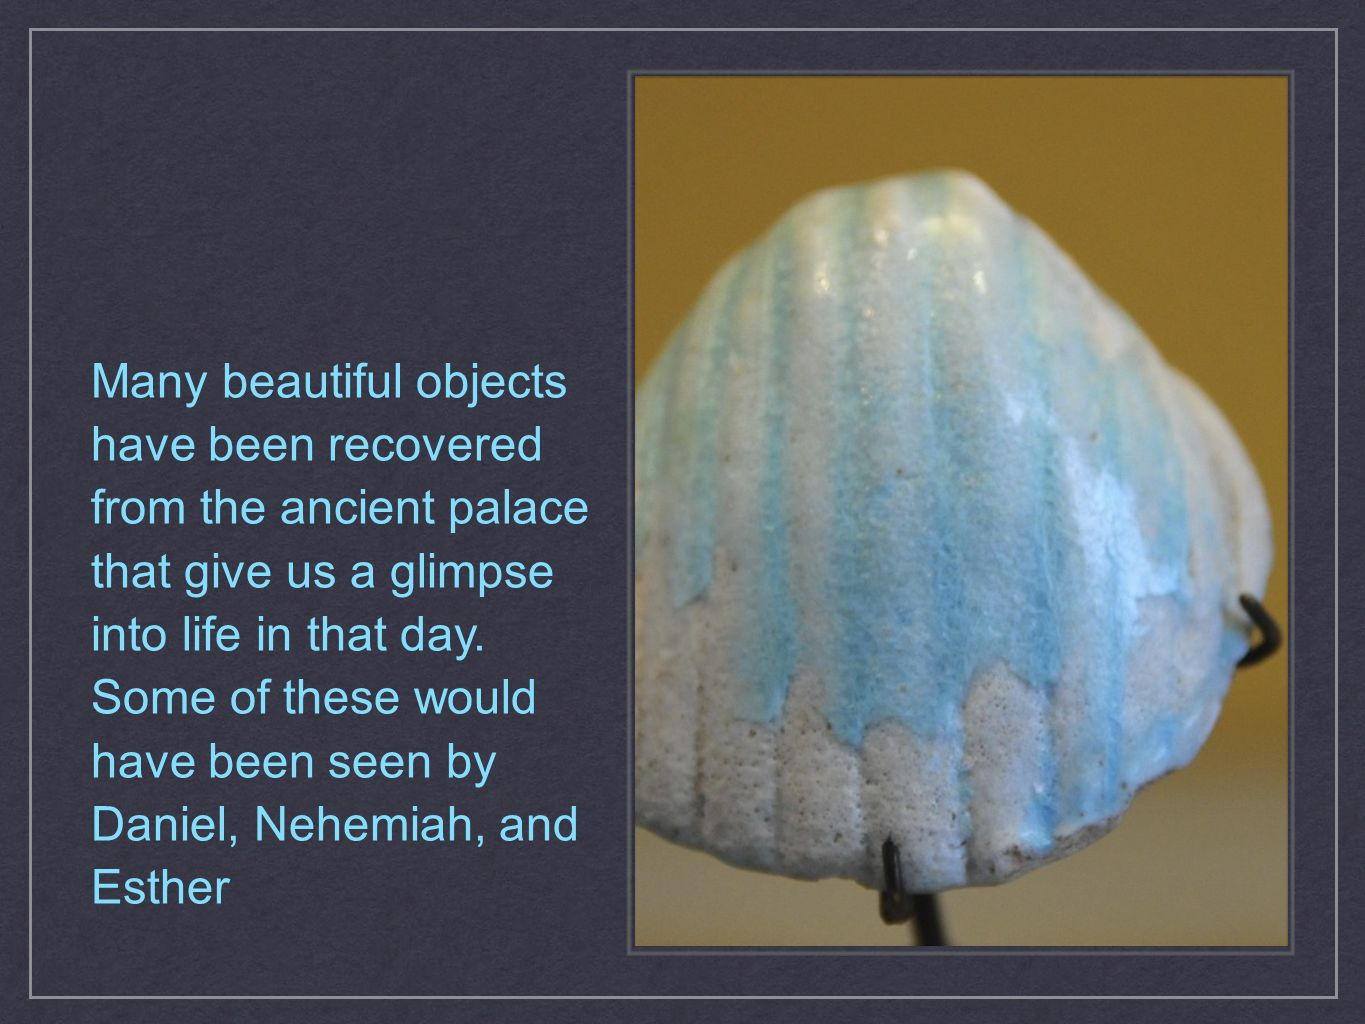 Many beautiful objects have been recovered from the ancient palace that give us a glimpse into life in that day. Some of these would have been seen by